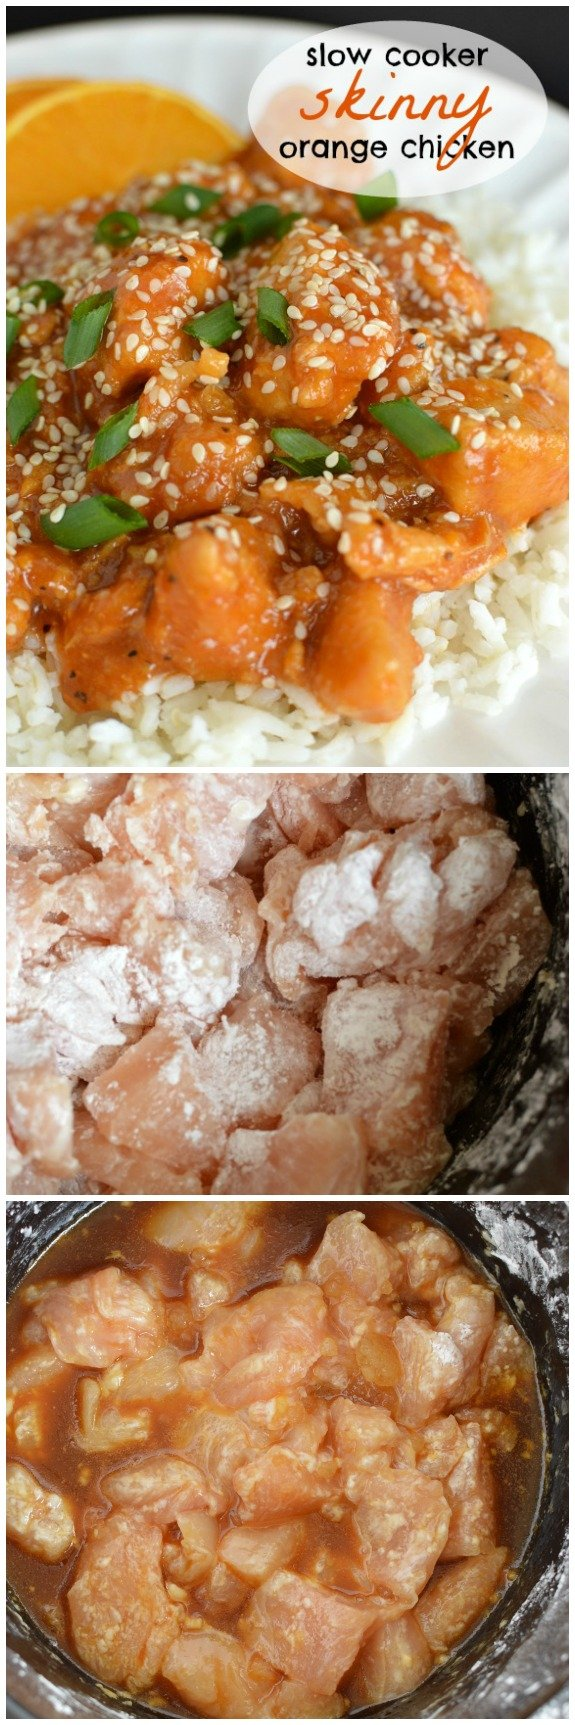 Slow Cooker Skinny Orange Chicken is bursting with sweet and a little spicy flavors! And it's so EASY that it works really well on my work days! Little Dairy on the Prairie